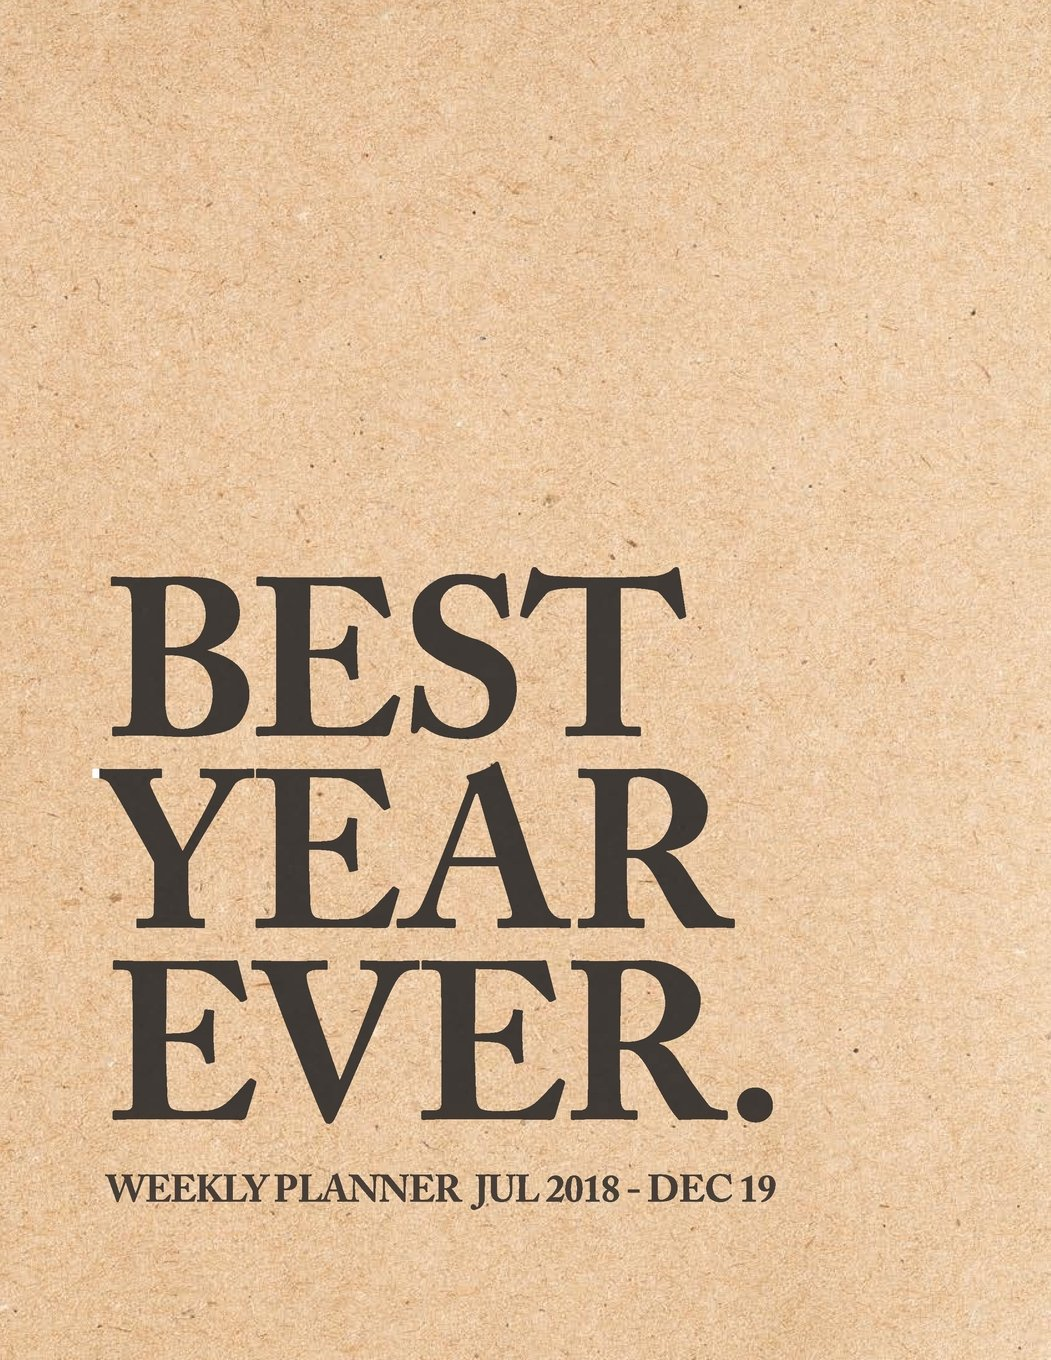 Download Best Year Ever Weekly Planner Jul 18 - Dec 19: 2018-2019 Planner  18-Month Weekly View Planner  To-Do Lists + Motivational Quotes  Jul 18-Dec 19 (Mid Year Planners) (Volume 1) ebook